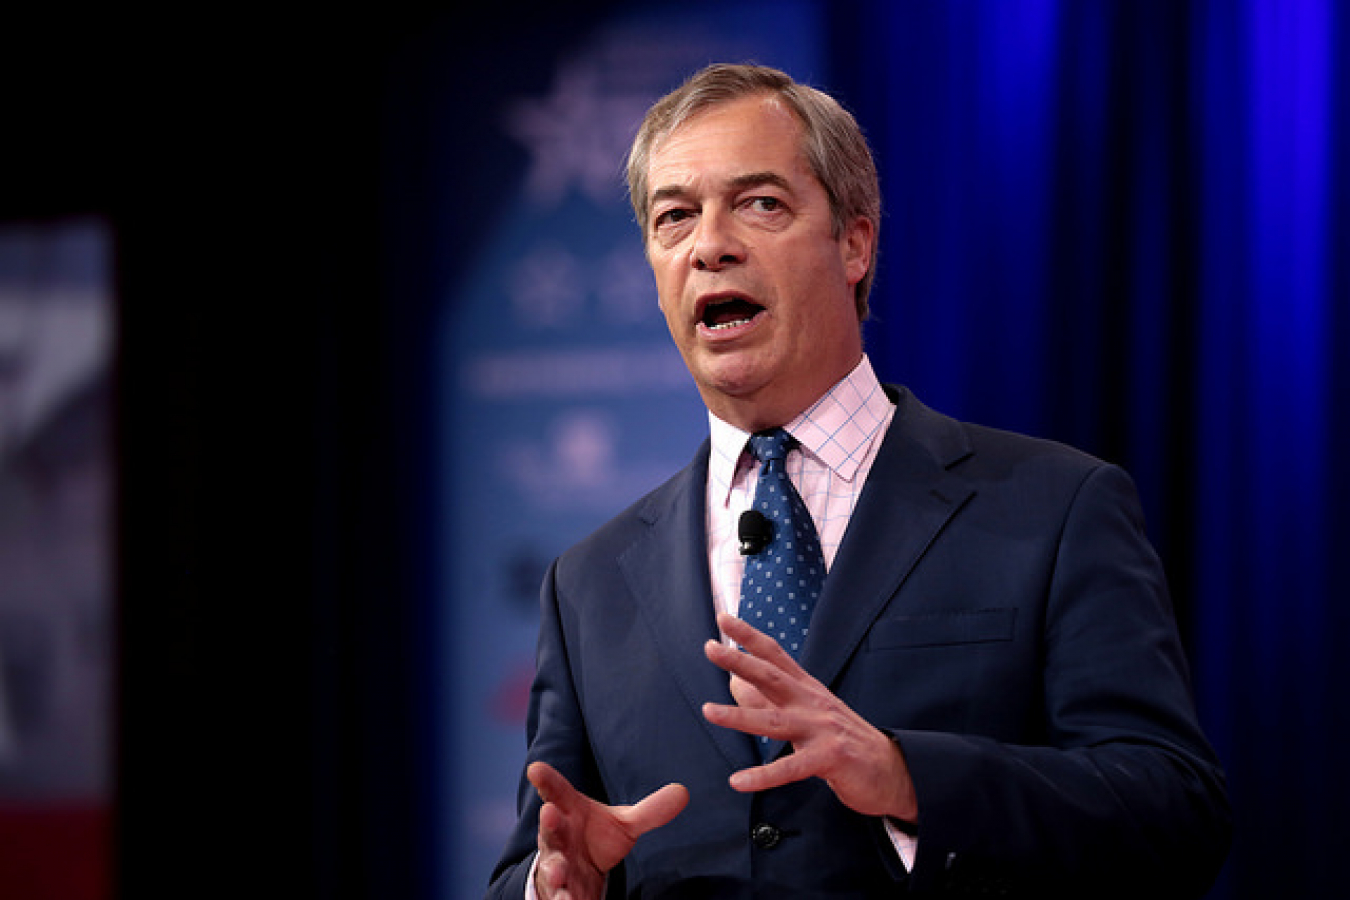 Nigel Farage, former leader UKIP